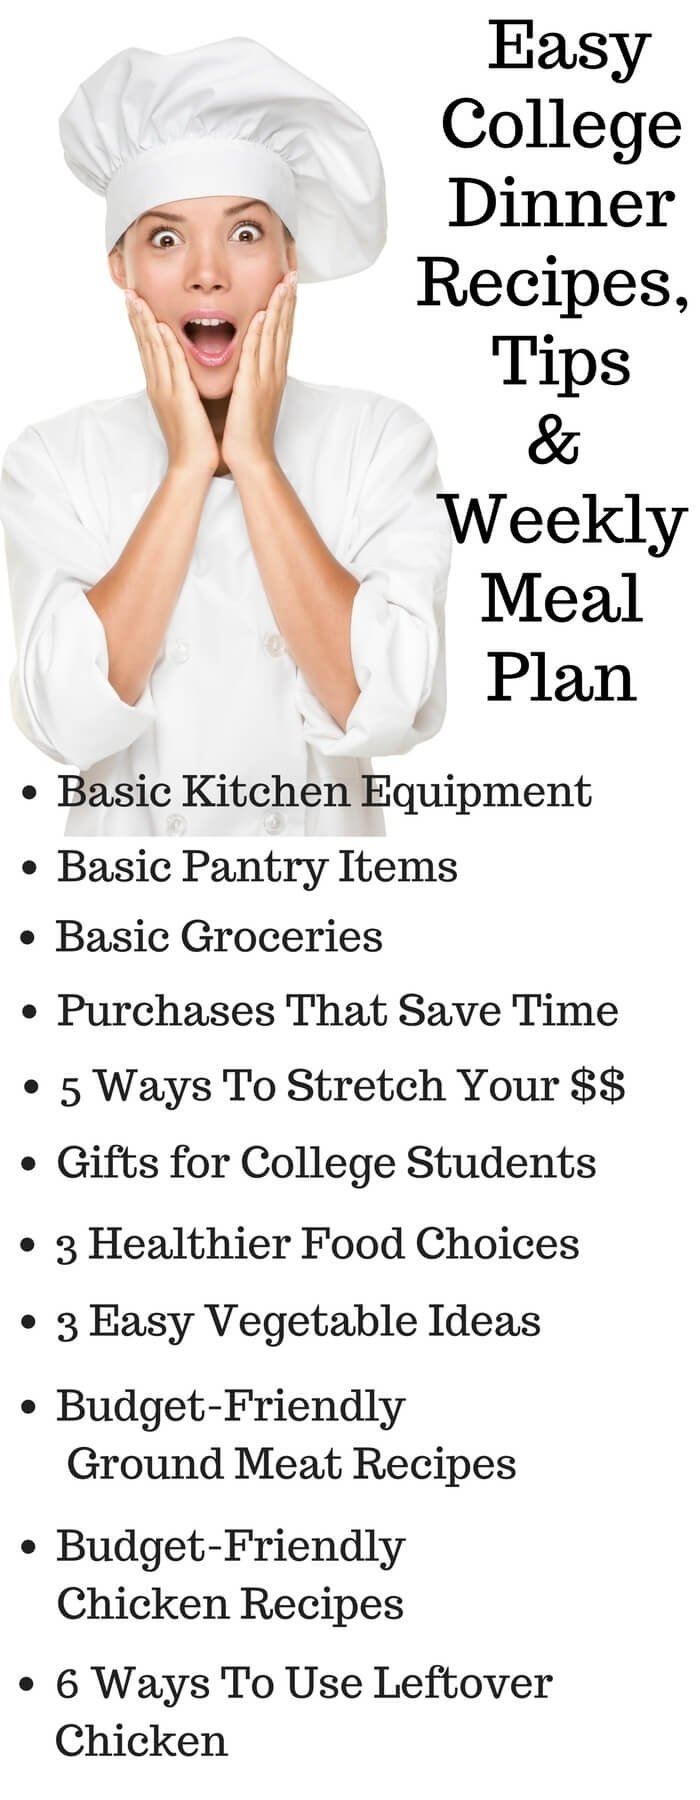 10 Trendy List Of Easy Dinner Ideas easy college dinner recipes with printable weekly meal plan and 2020